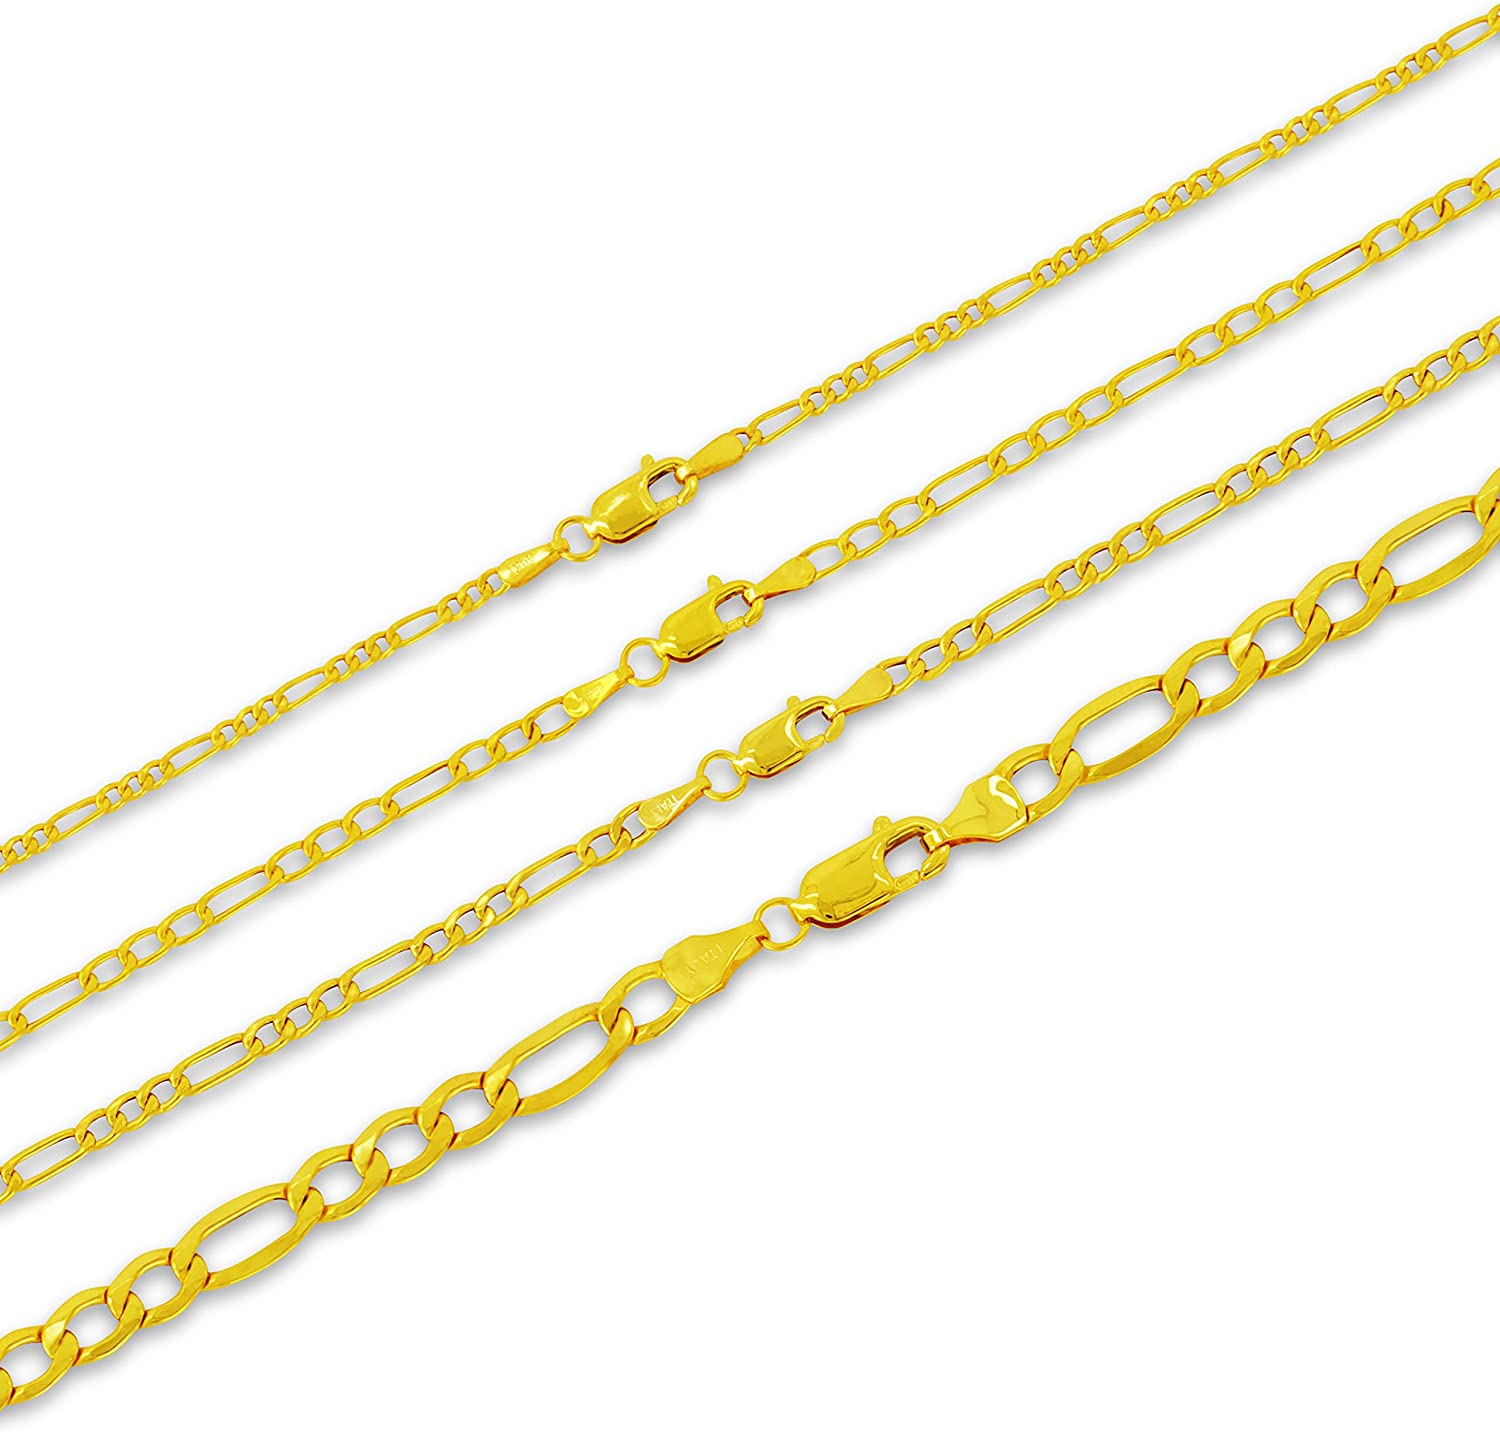 PORI JEWELERS 10K Gold 2MM, 2.3MM, 3MM, 3.5MM, 5.5MM, 7MM, 8MM Figaro 3+1 Link Chain Necklace or Bracelet - Yellow, White or Rose Gold - 7